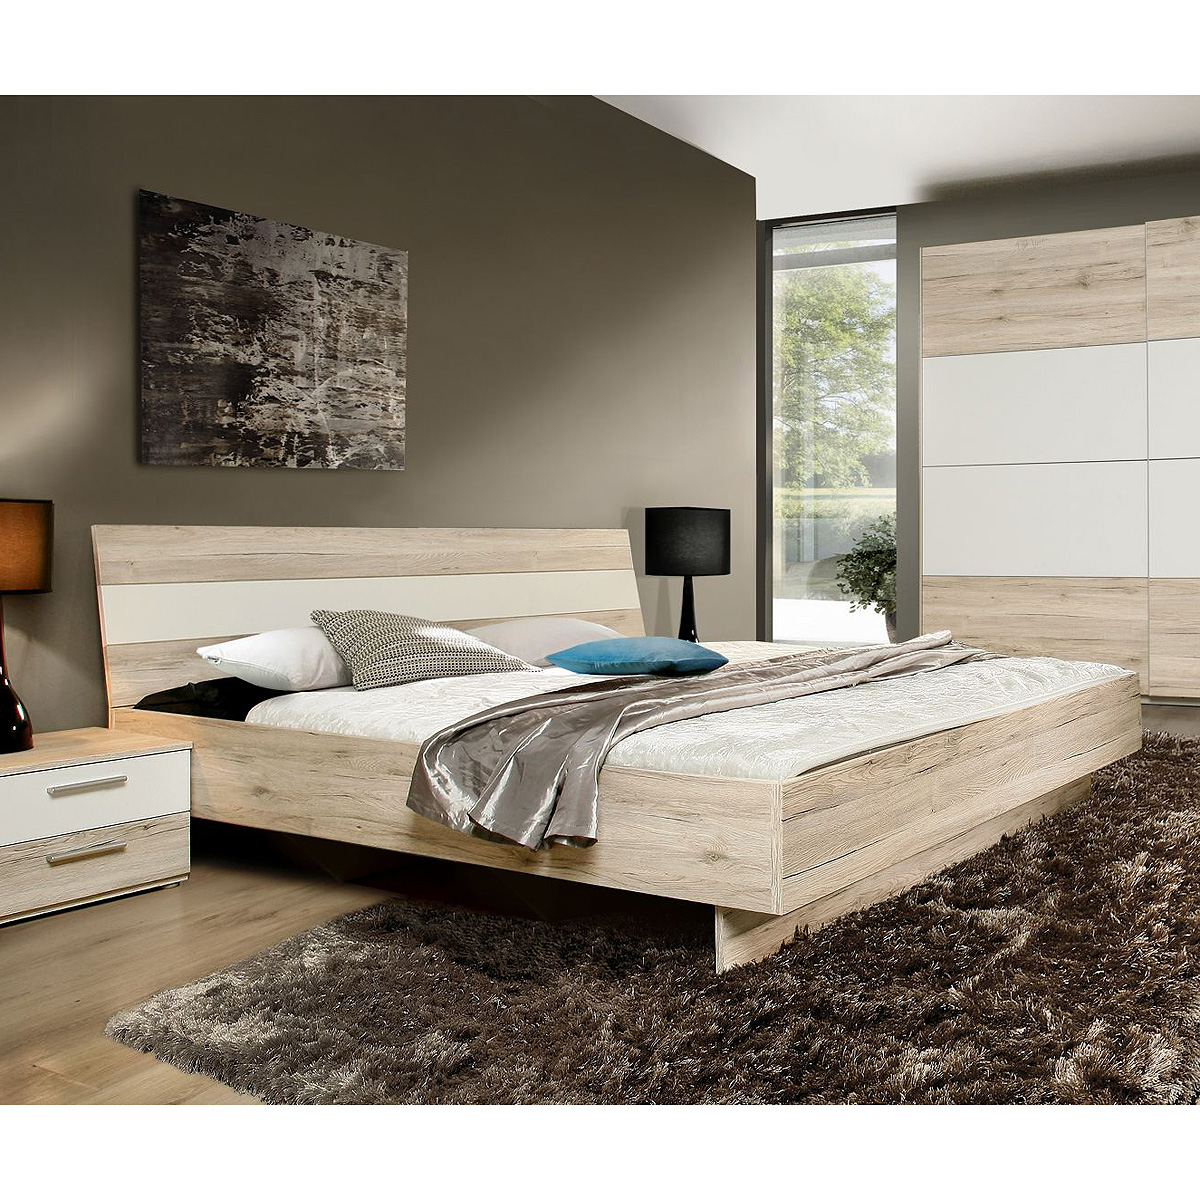 bett valerie futonbett schlafzimmerbett doppelbett in sandeiche wei 180x200 cm ebay. Black Bedroom Furniture Sets. Home Design Ideas